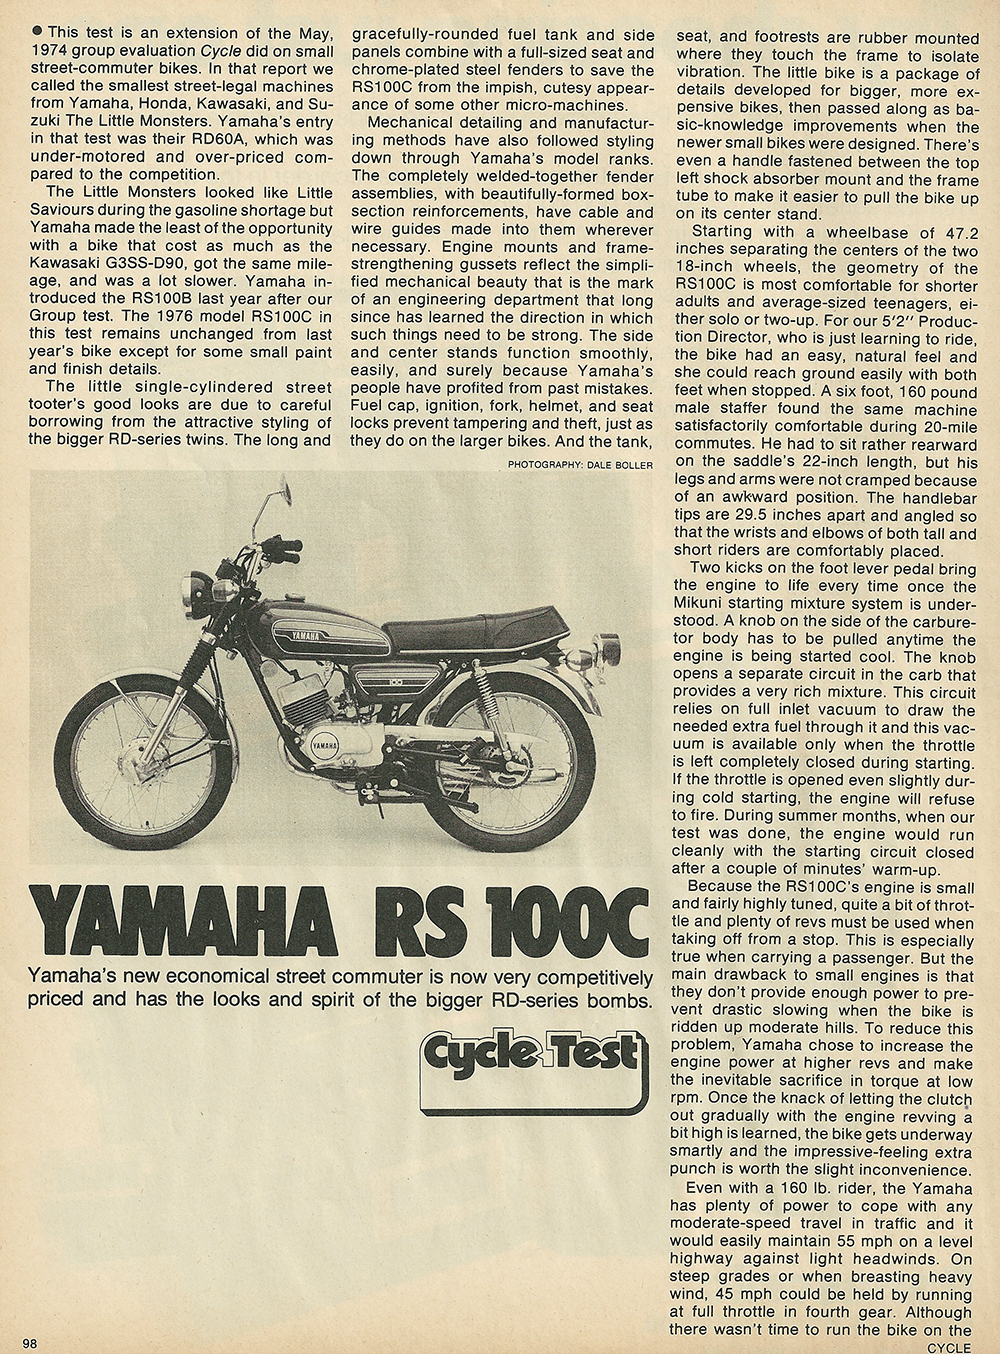 1975 Yamaha RS 100C road test 1.JPG